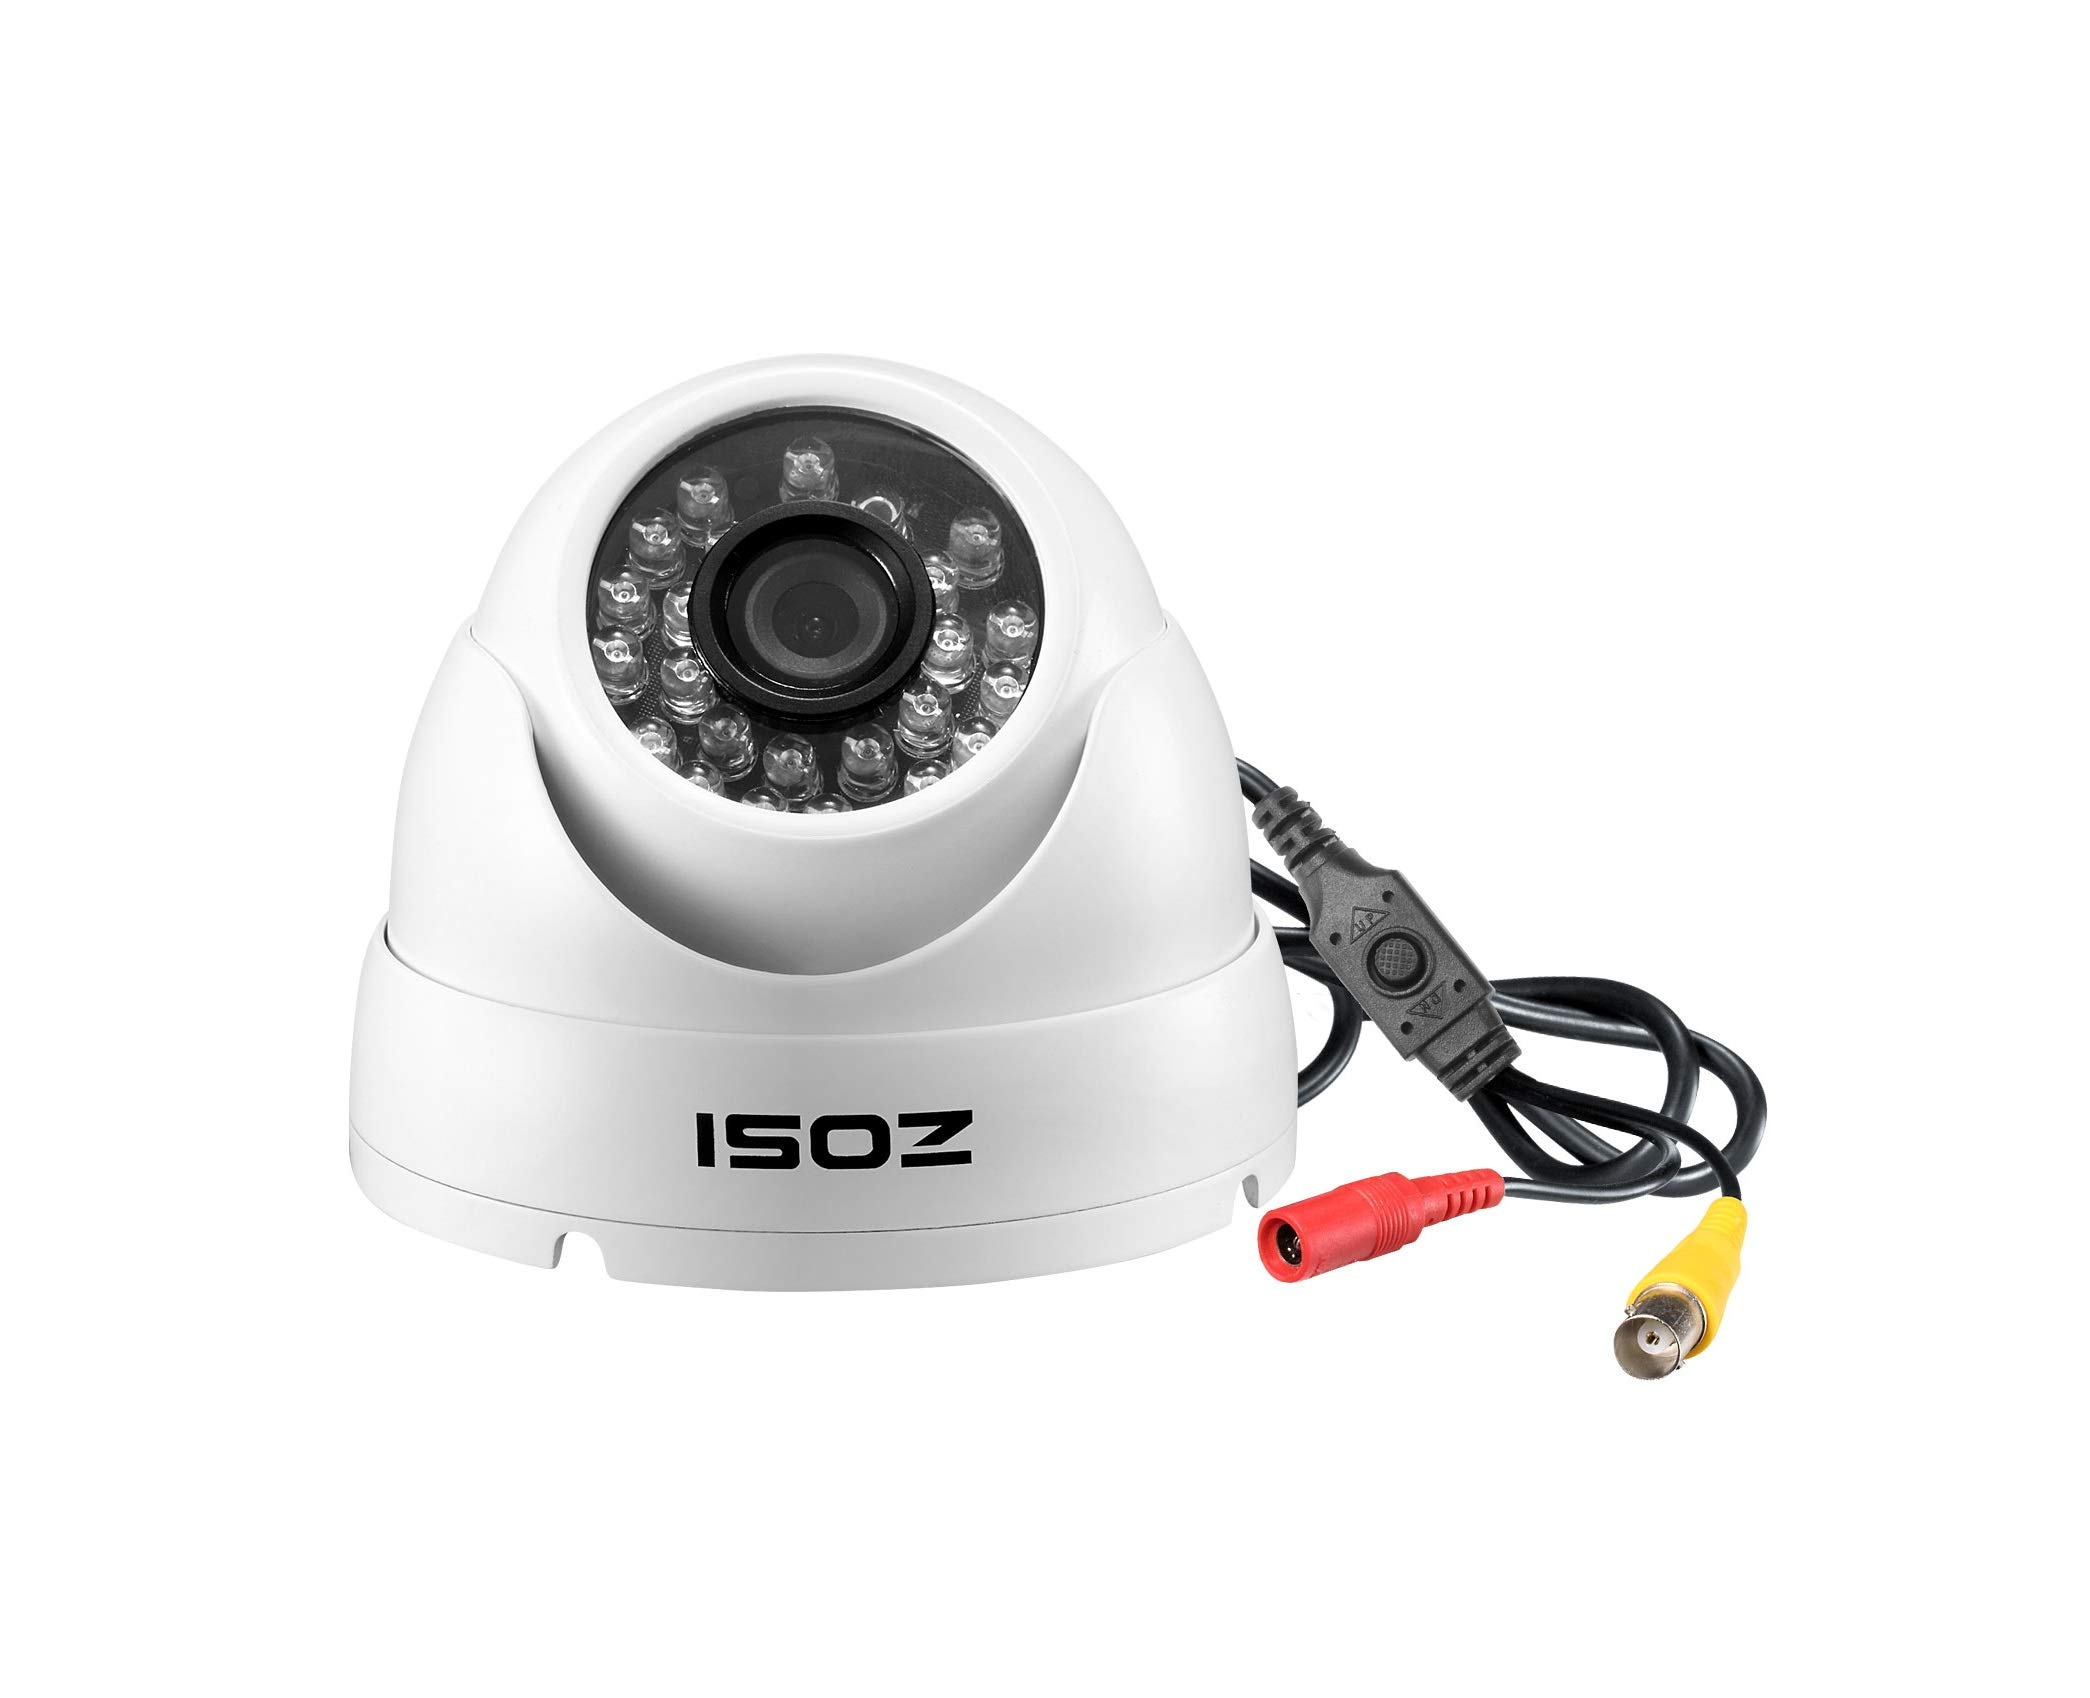 ZOSI Security Cameras 1920TVL Weatherproof